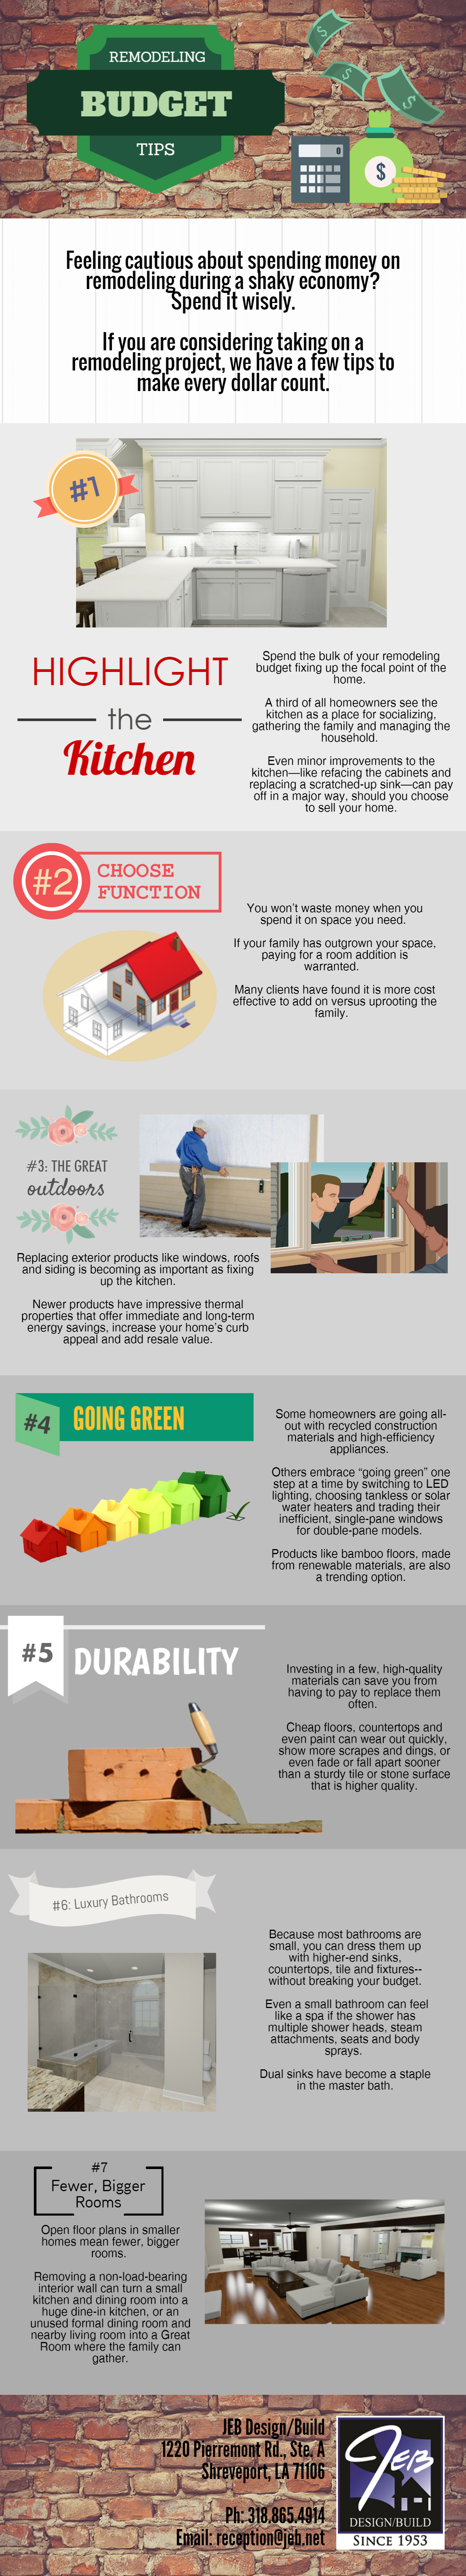 remodeling-budget-tips-infographic